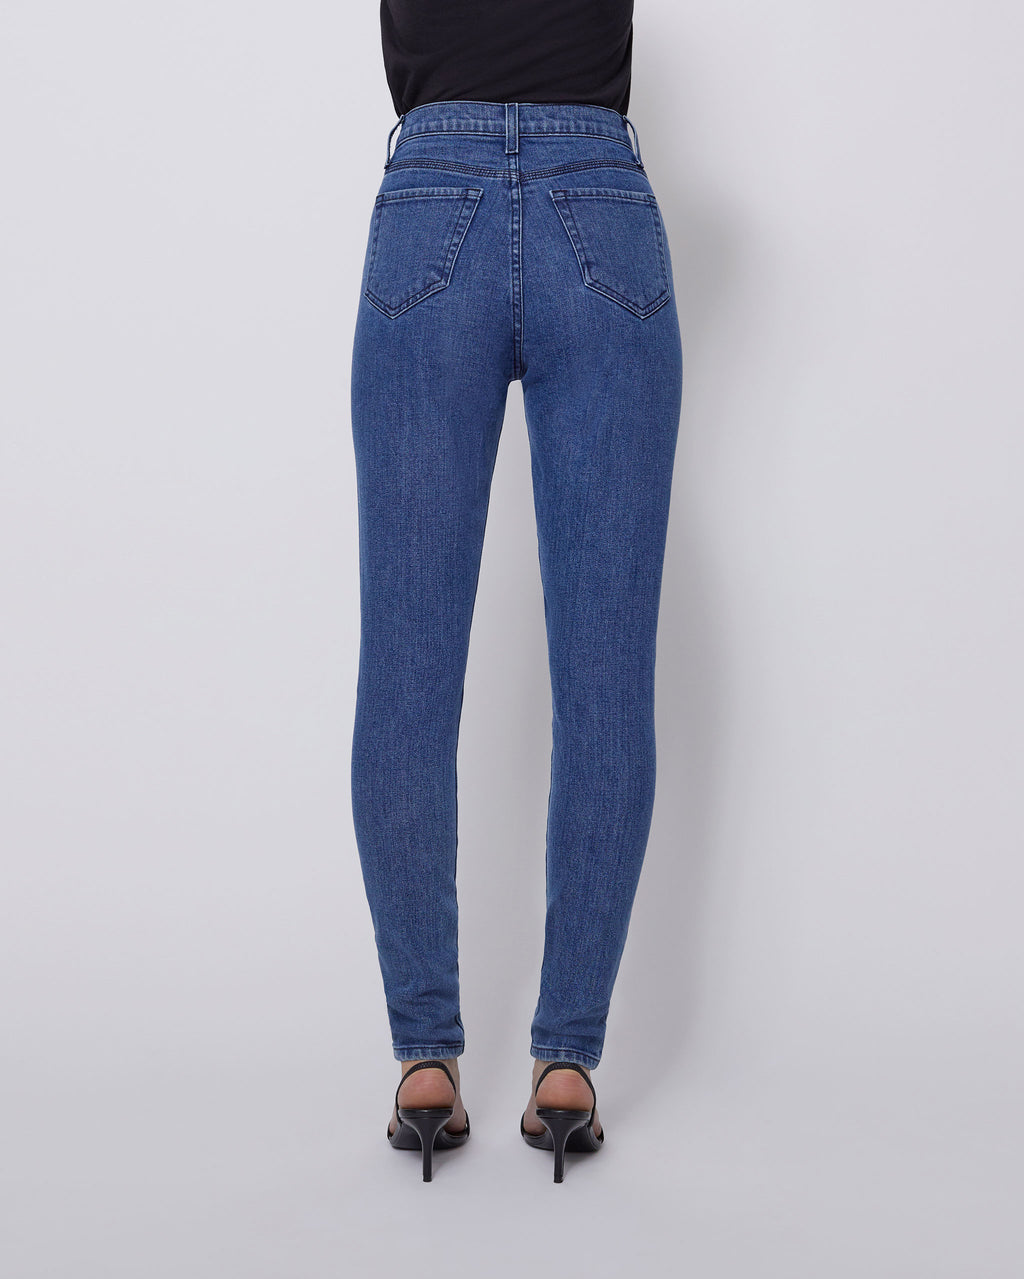 The Ultra High Rise Skinny Jean in Medium Clear Blue